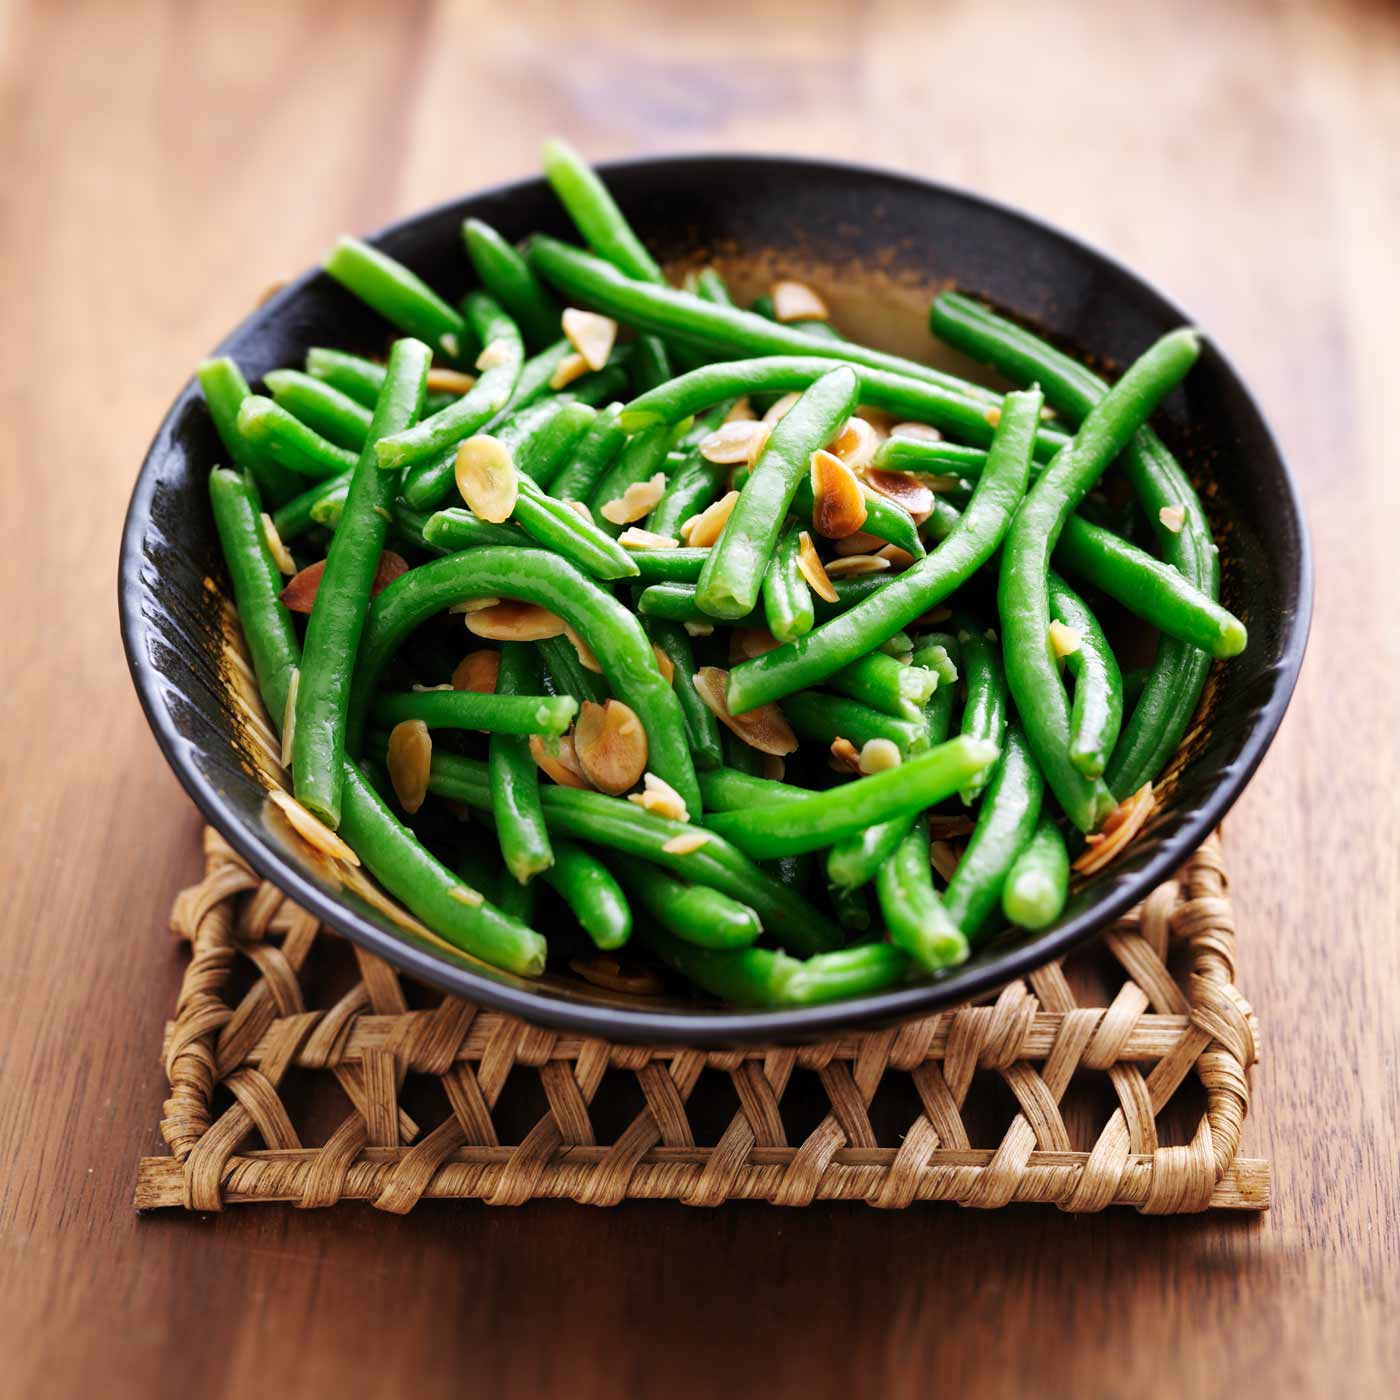 Recipe for Green Bean Almondine made with Miso Master Organic Chickpea Miso